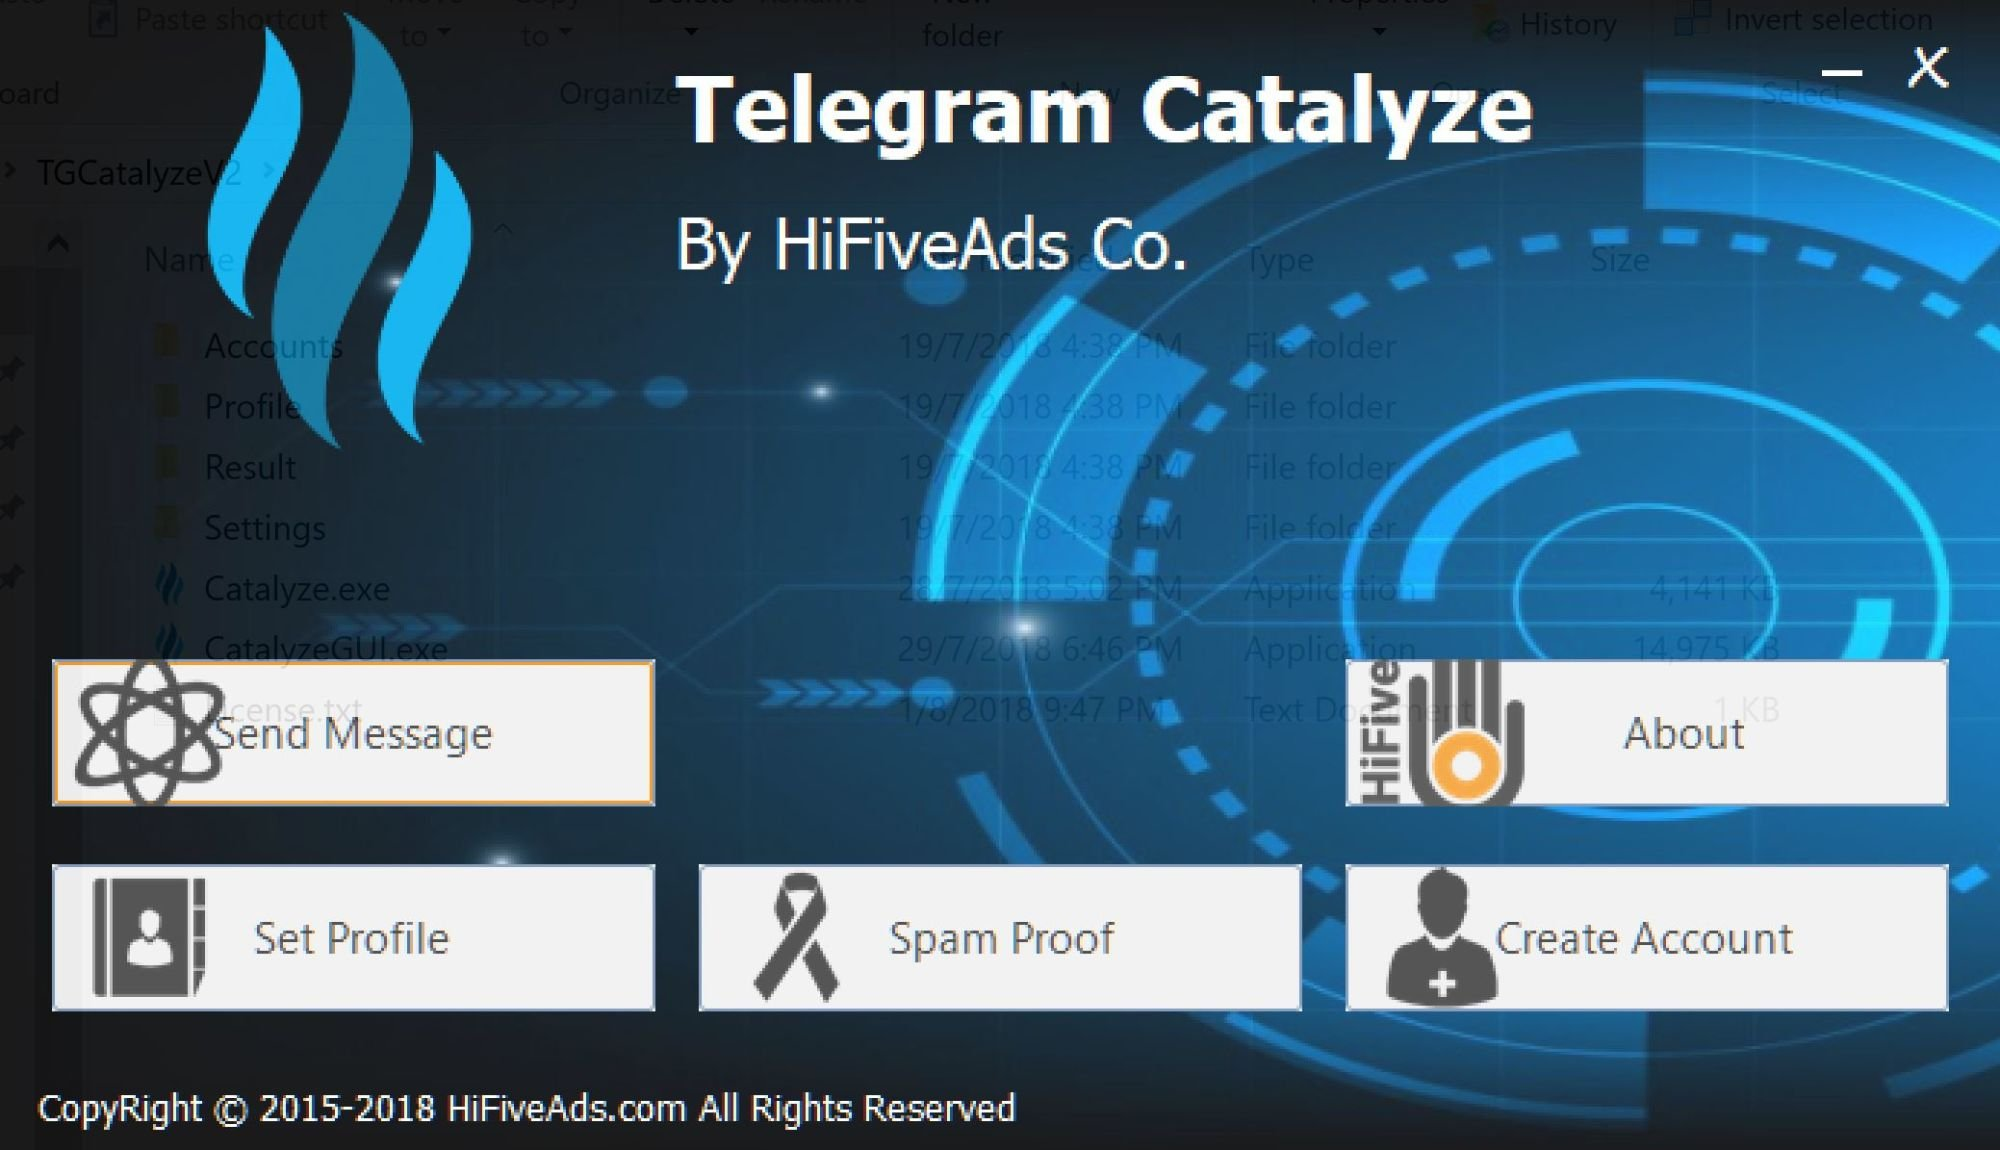 telegram catalyz